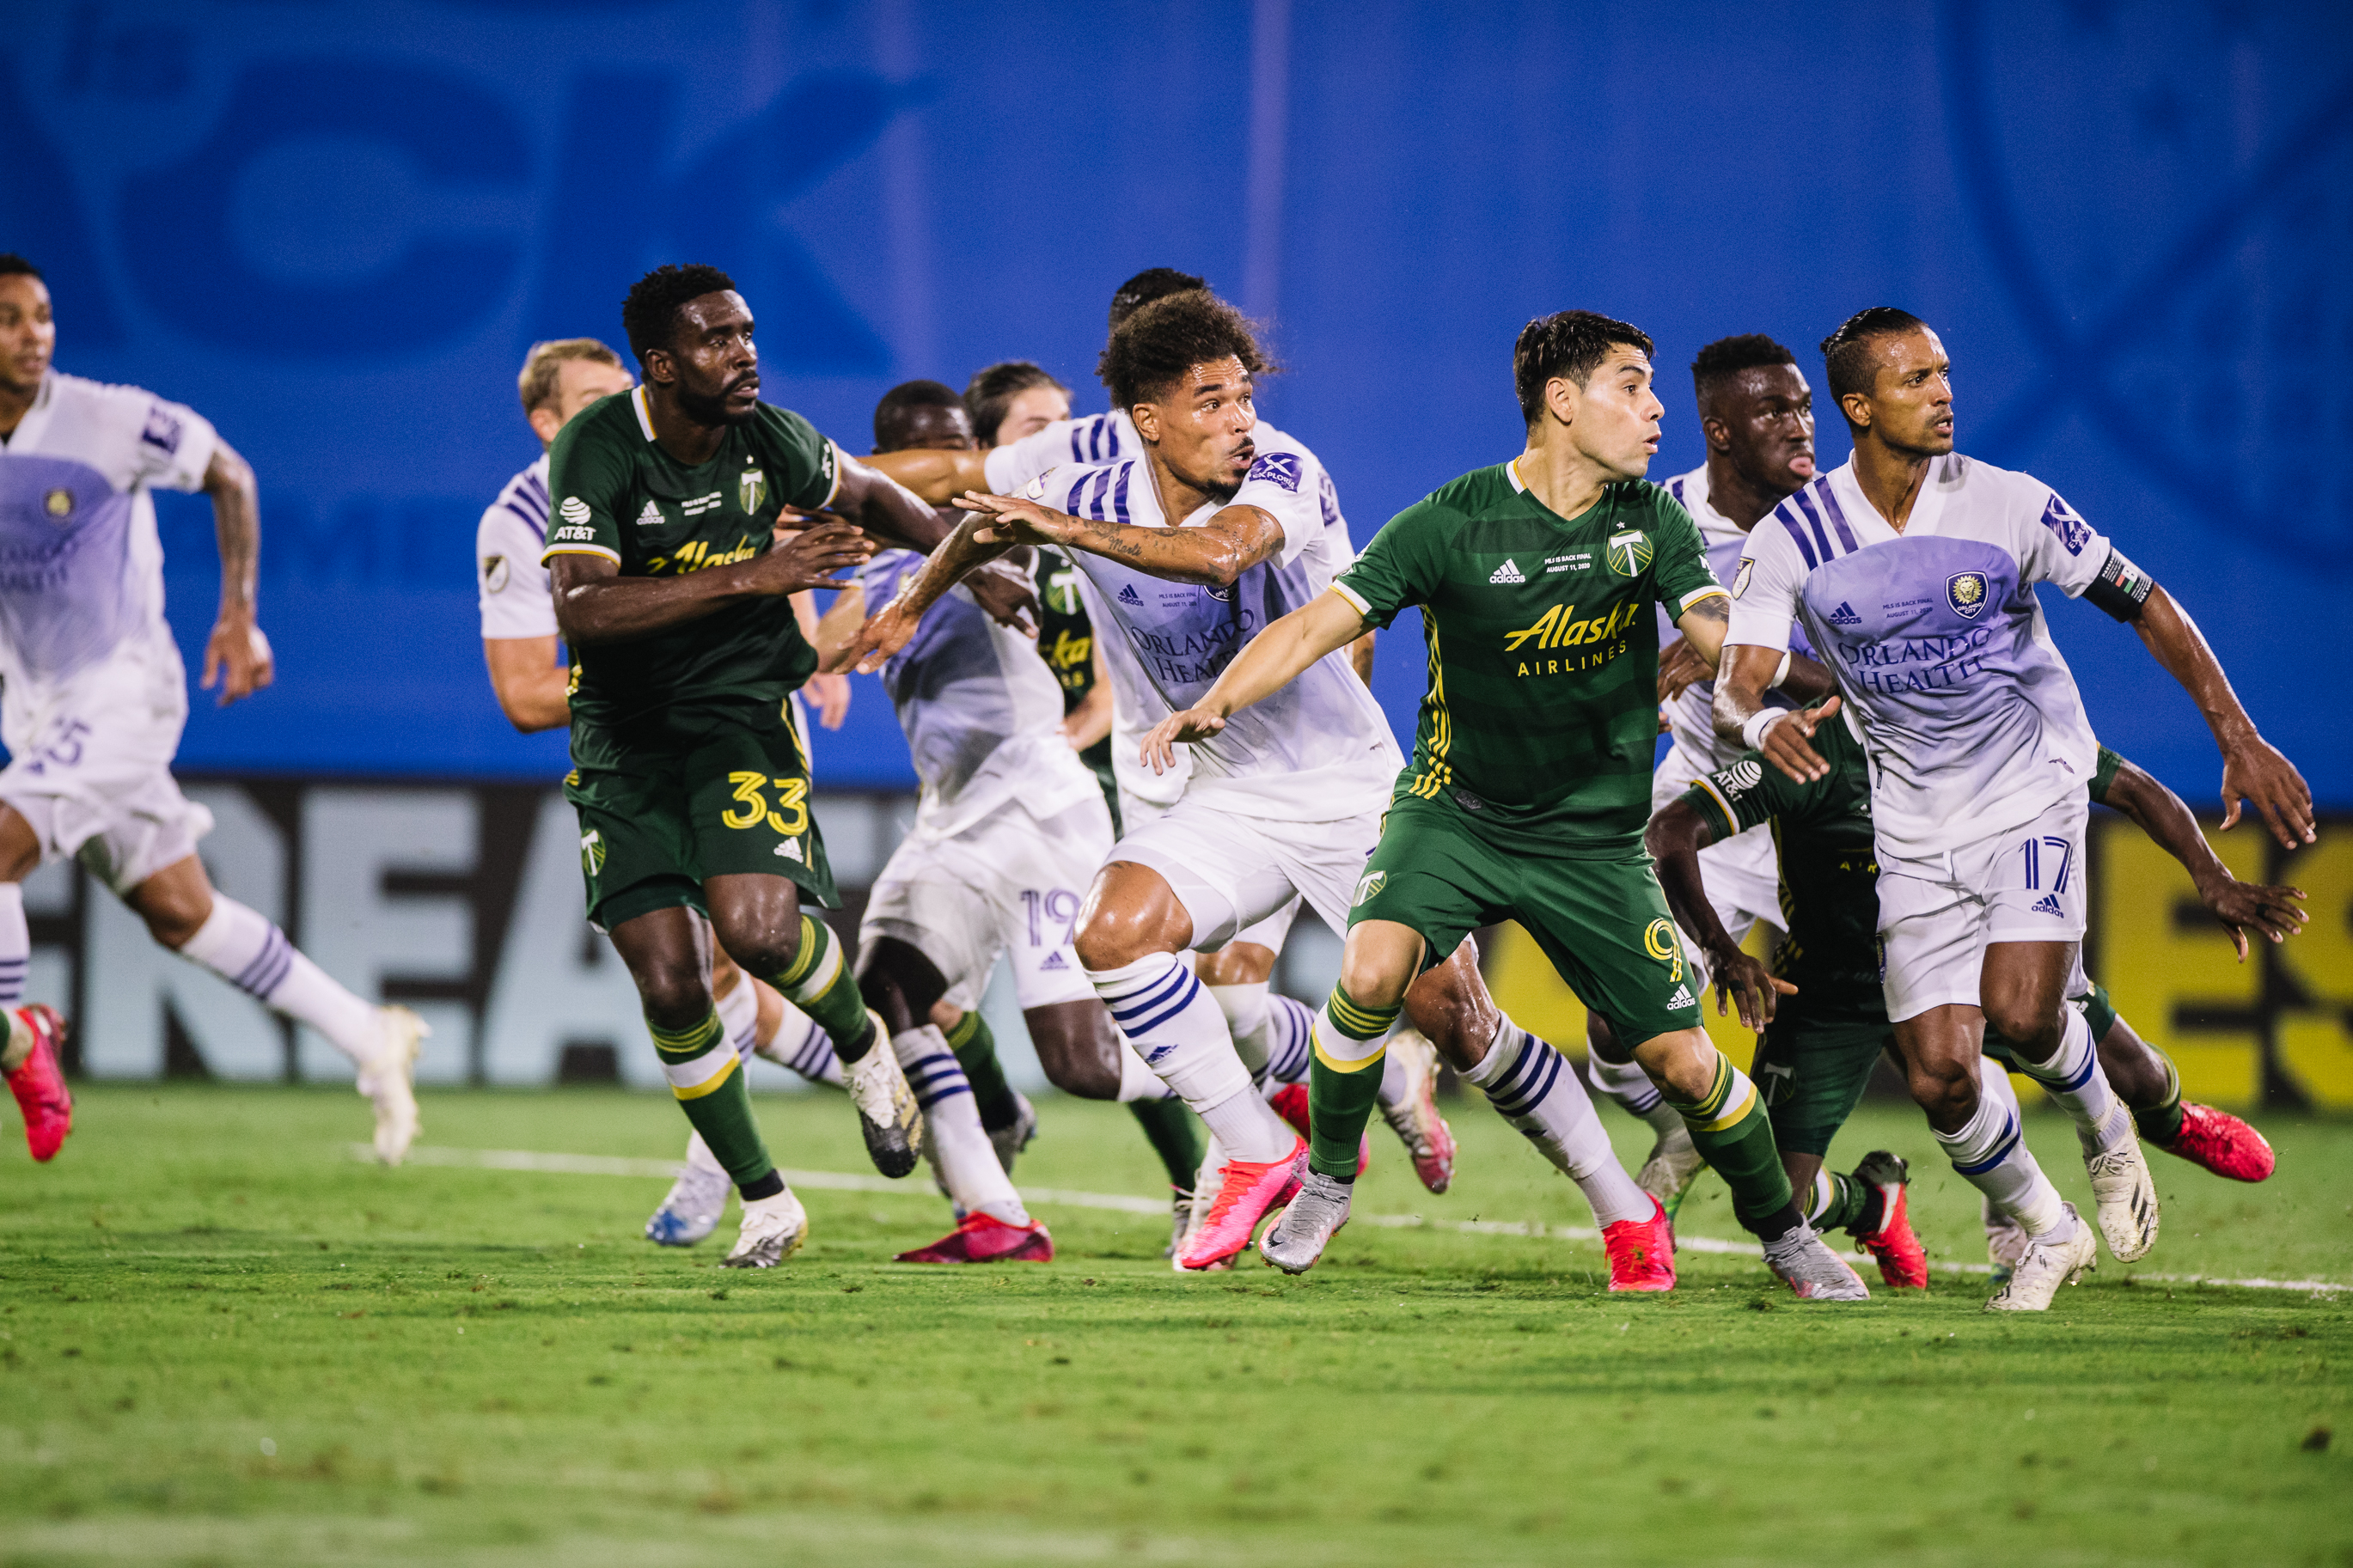 Full time photos on 08_11 - Portland Timbers vs Orlando City - Wide World of Sports_m20179